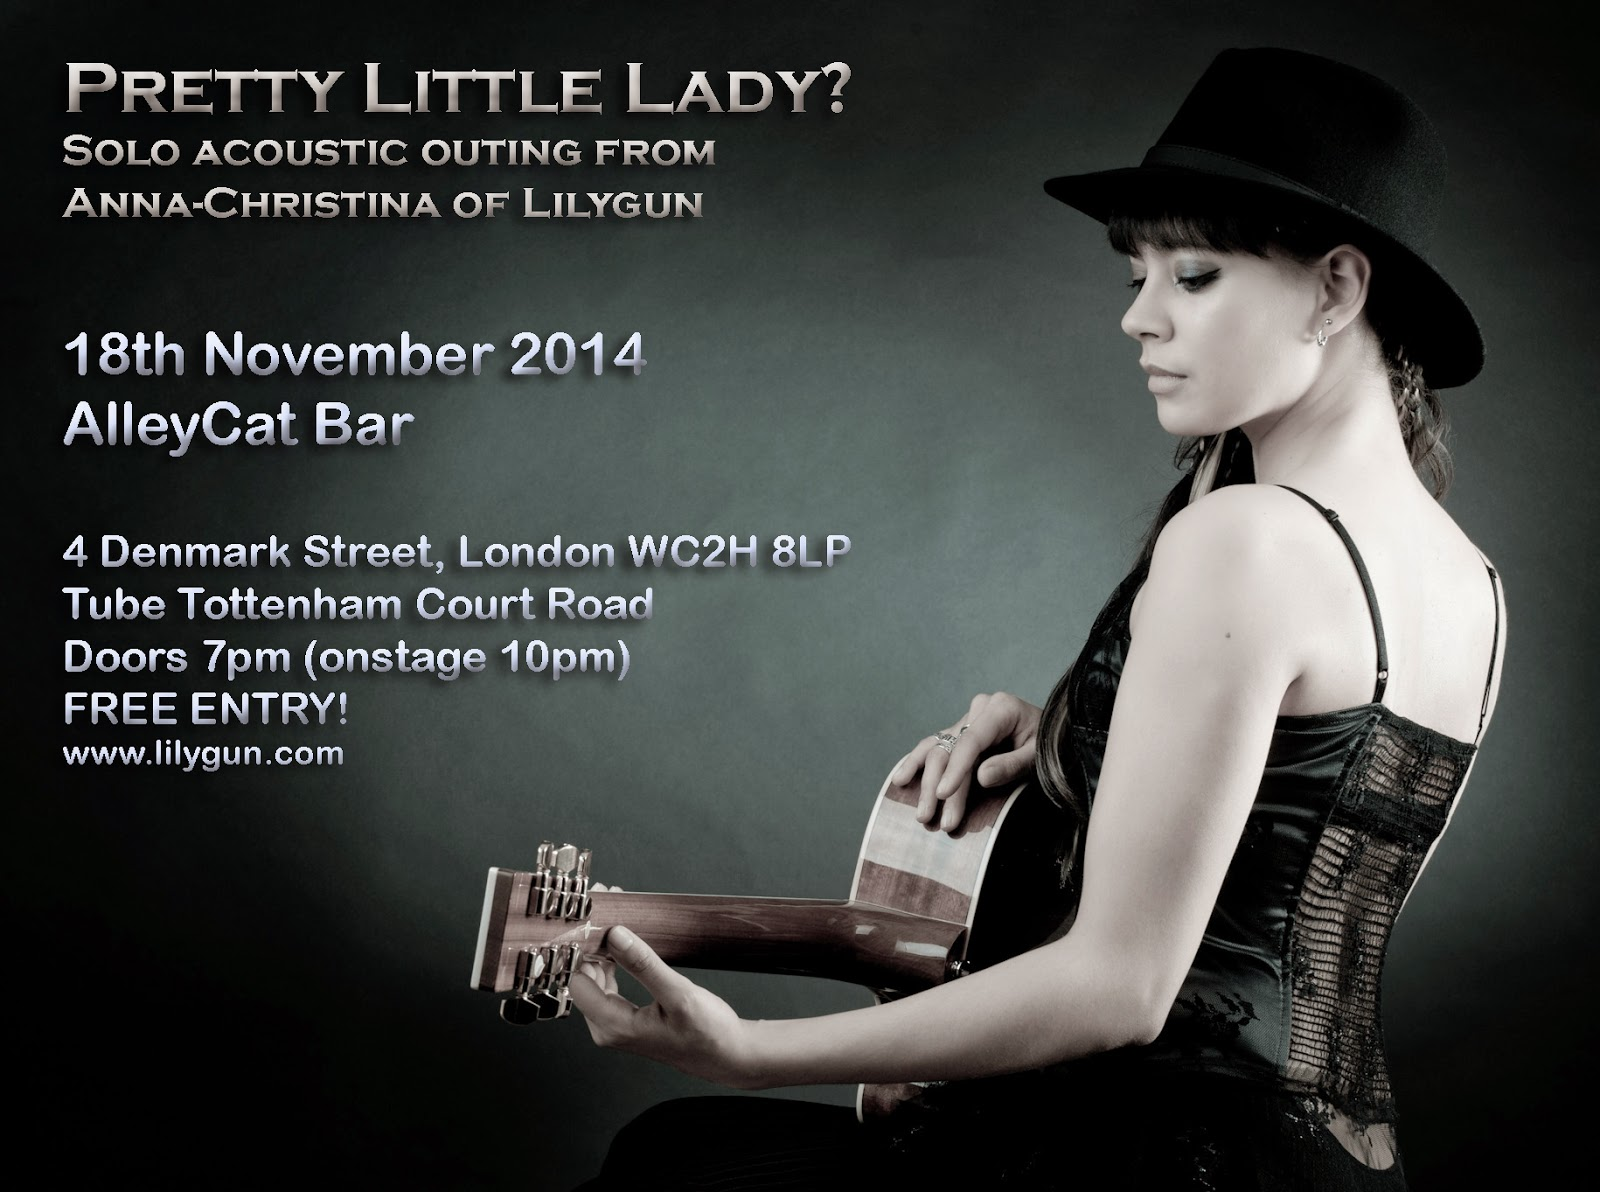 Anna-Christina from Lilygun, Pretty Little Lady? flyer image